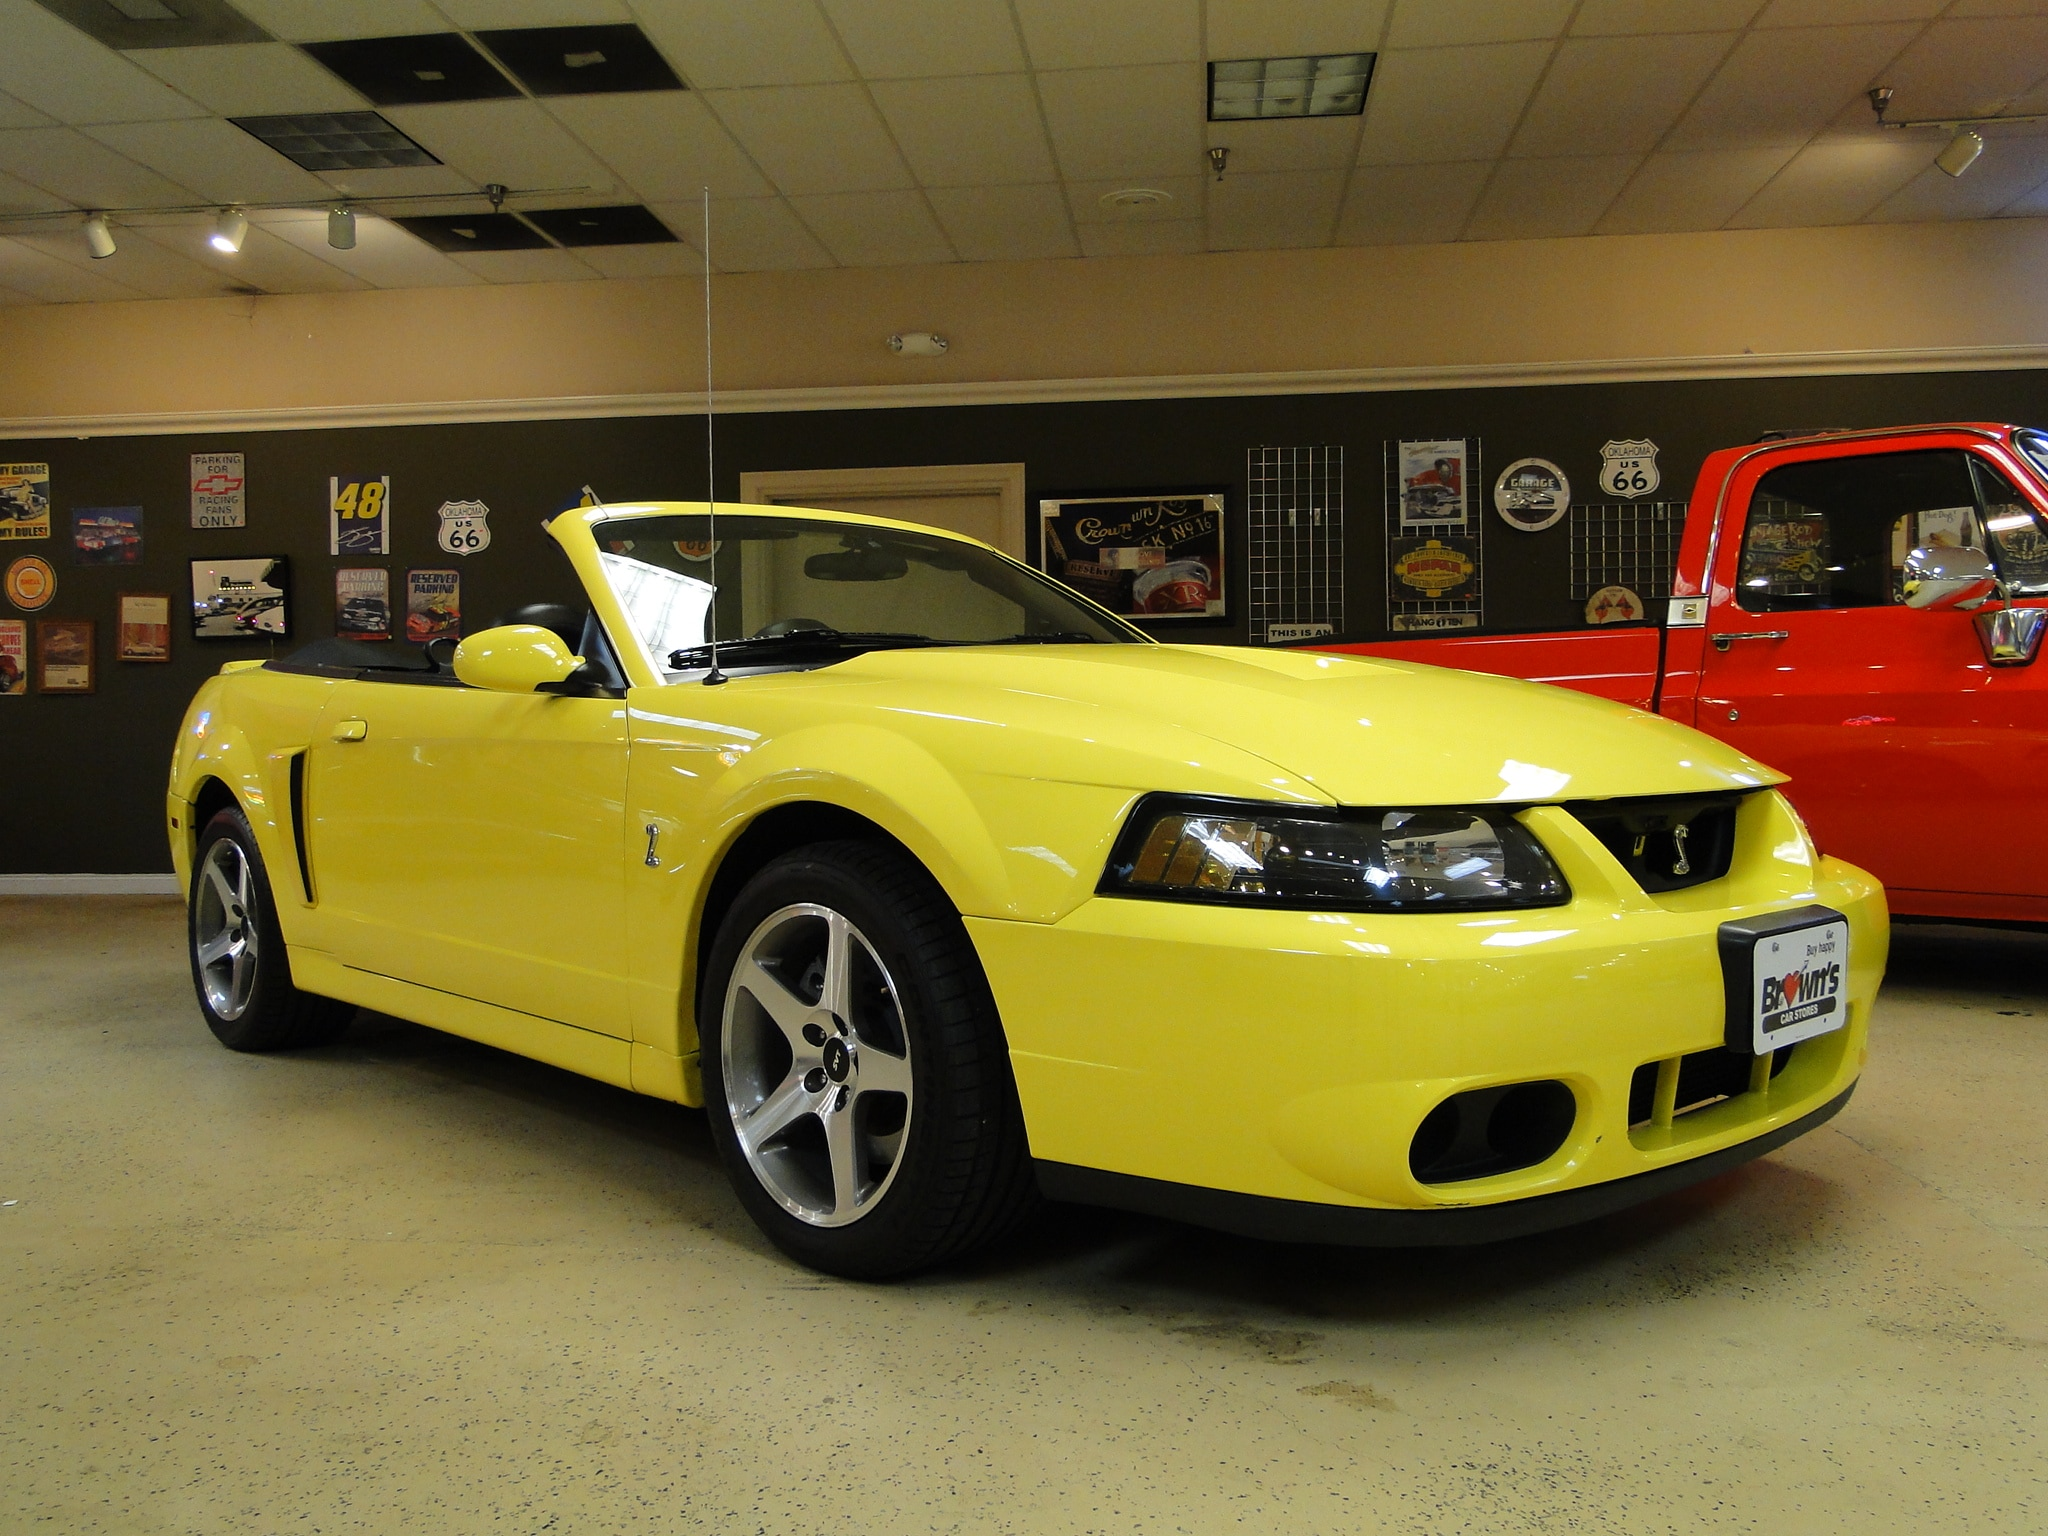 ford mustang svt cobra 2 dr supercharged coupe for sale in baltimore md cargurus. Black Bedroom Furniture Sets. Home Design Ideas